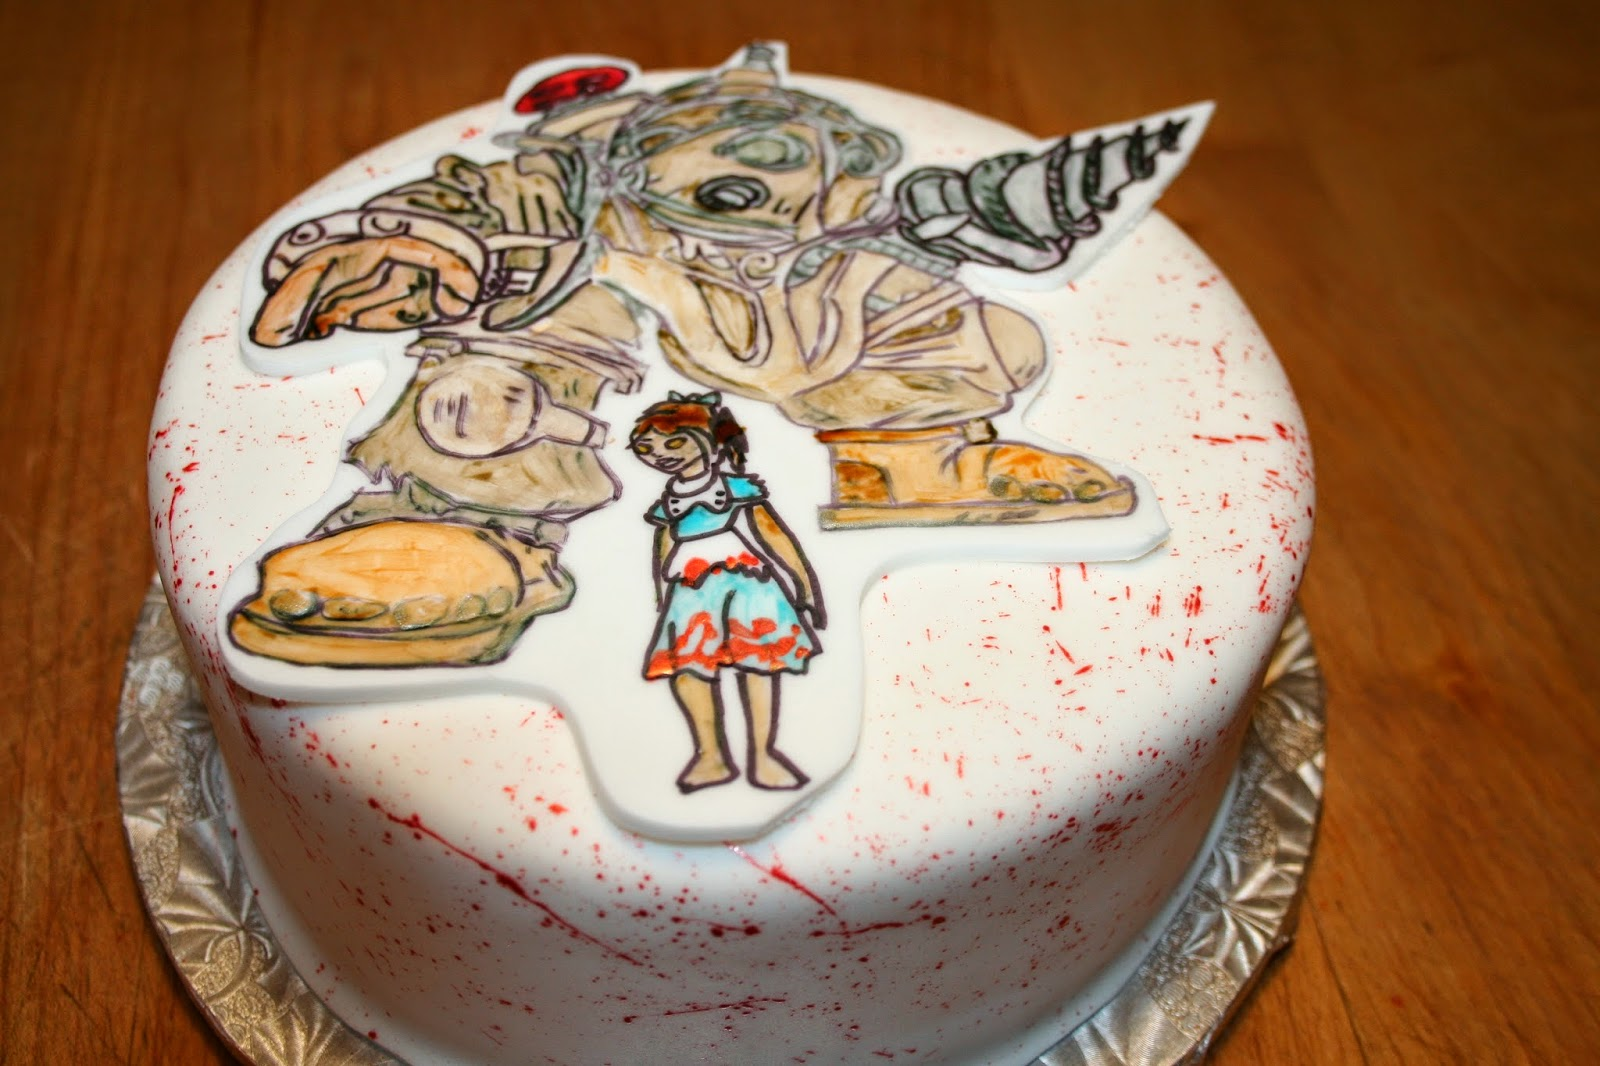 Birthday Cake For Little Sister ~ Hey there big daddy! carpe cakem! seize the cake!